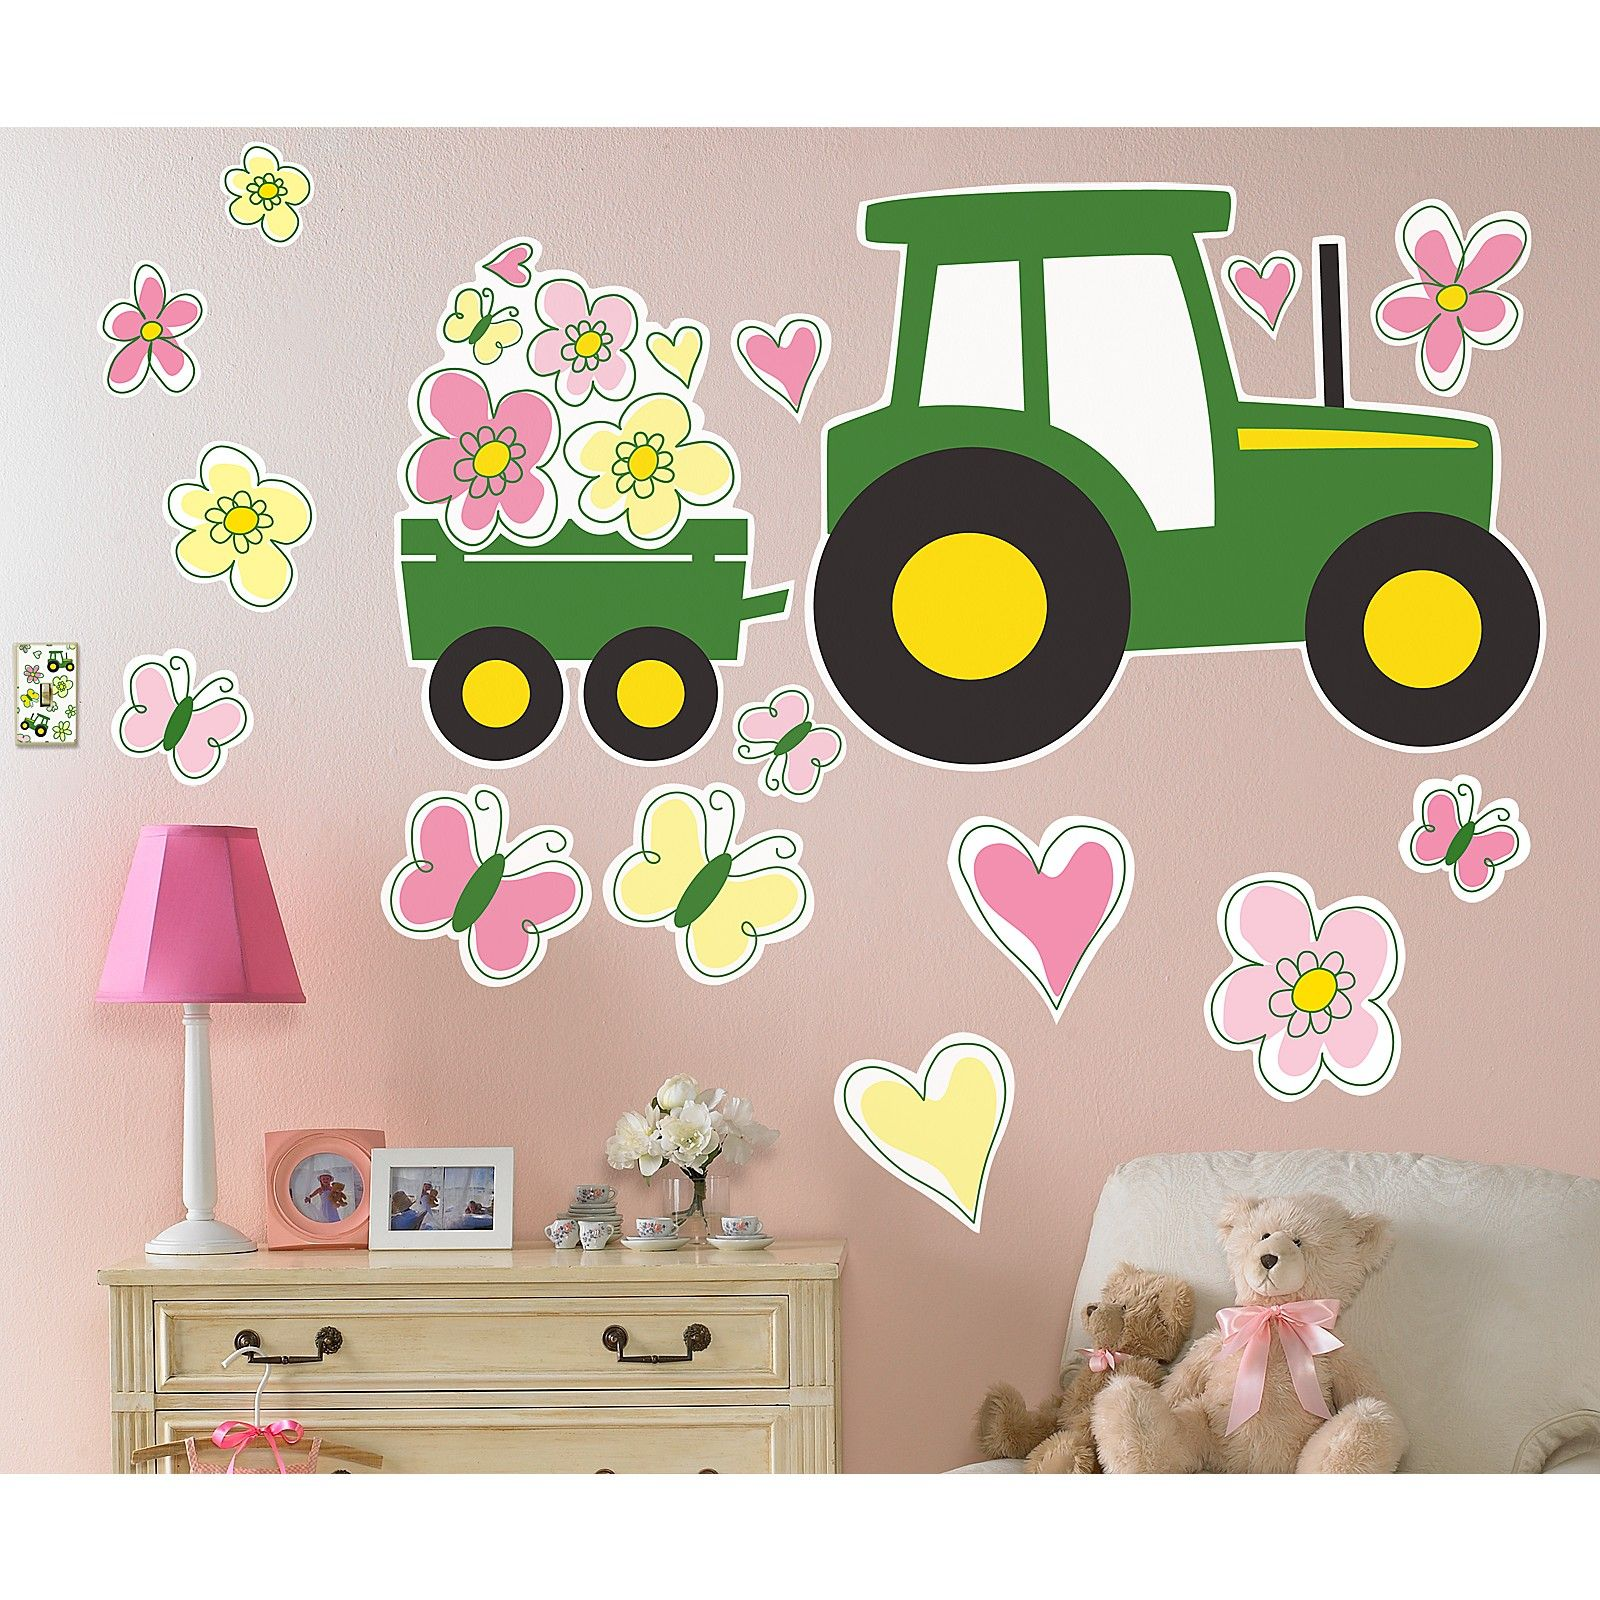 John Deere Pink Giant Wall Decals $39.99